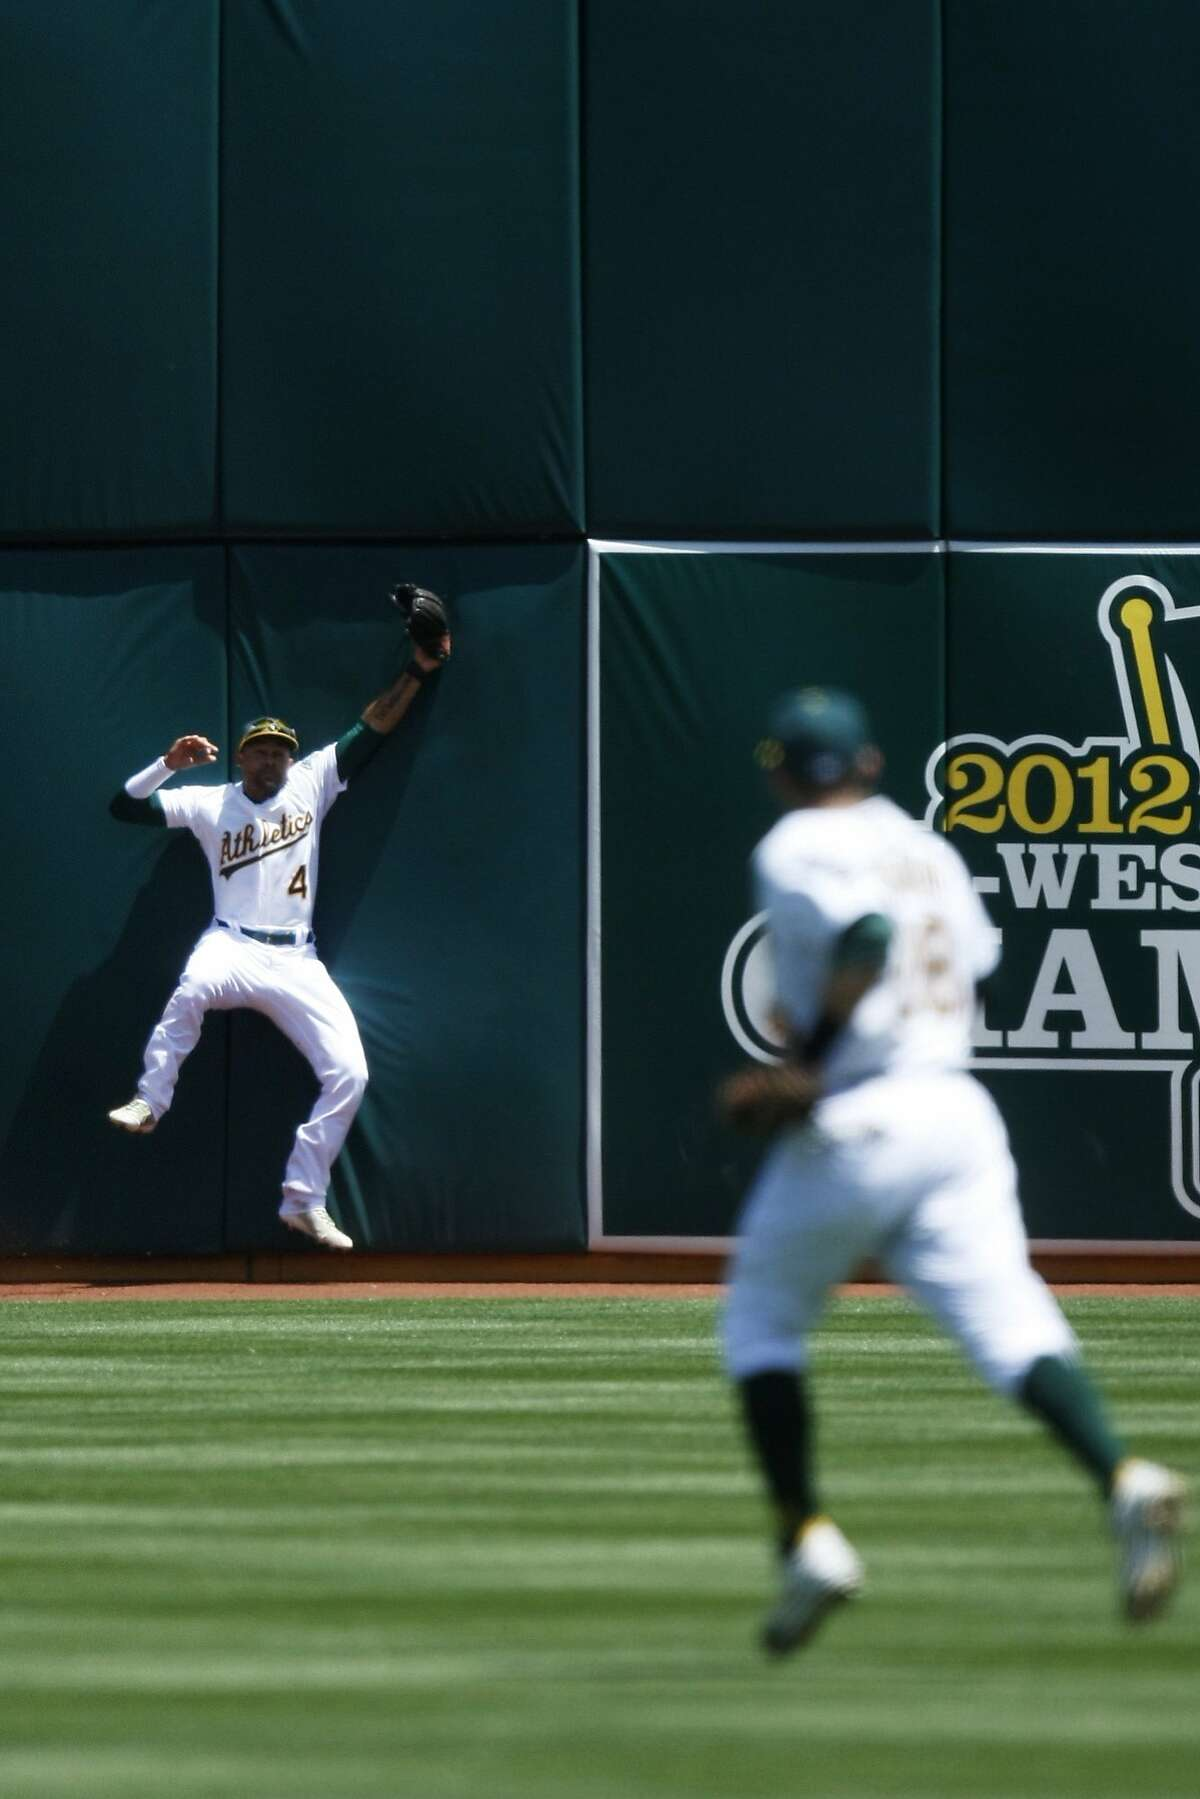 The Athletics' Coco Crisp catches a fly ball from The Mariners' Kyle Seager during the fourth inning of a game between the Oakland A's and the Seattle Mariners at O.co Coliseum on May 7, 2014 in Oakland, Calif. Coco Crisp was injured and taken out of the game on the play.